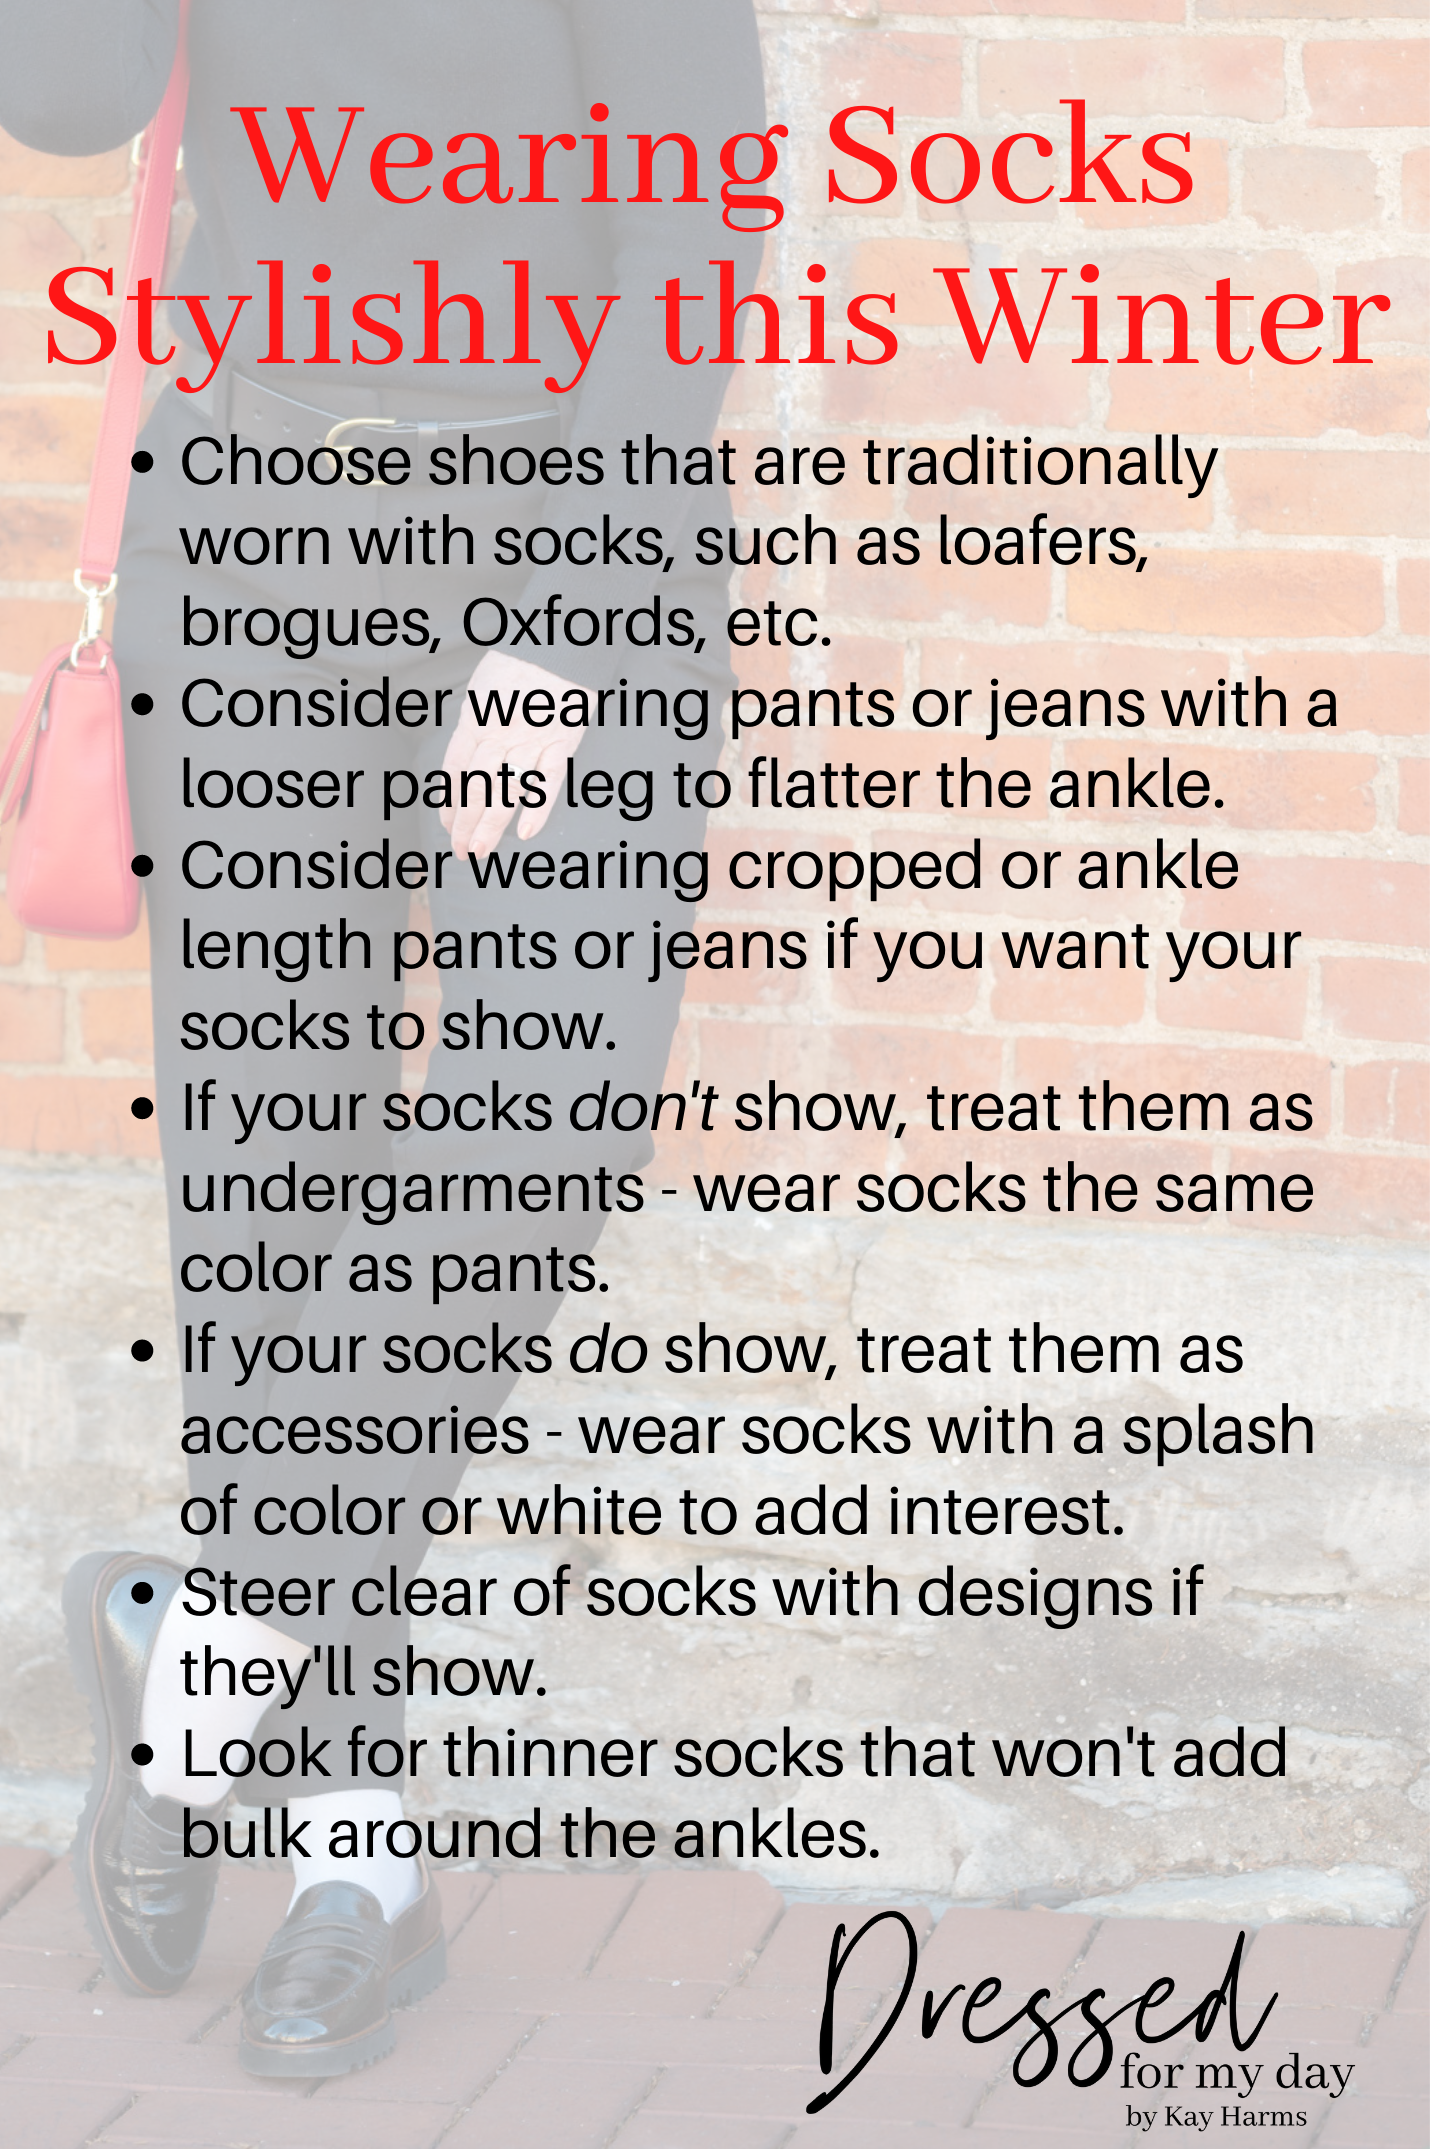 How to Wear Socks Stylishly this Winter